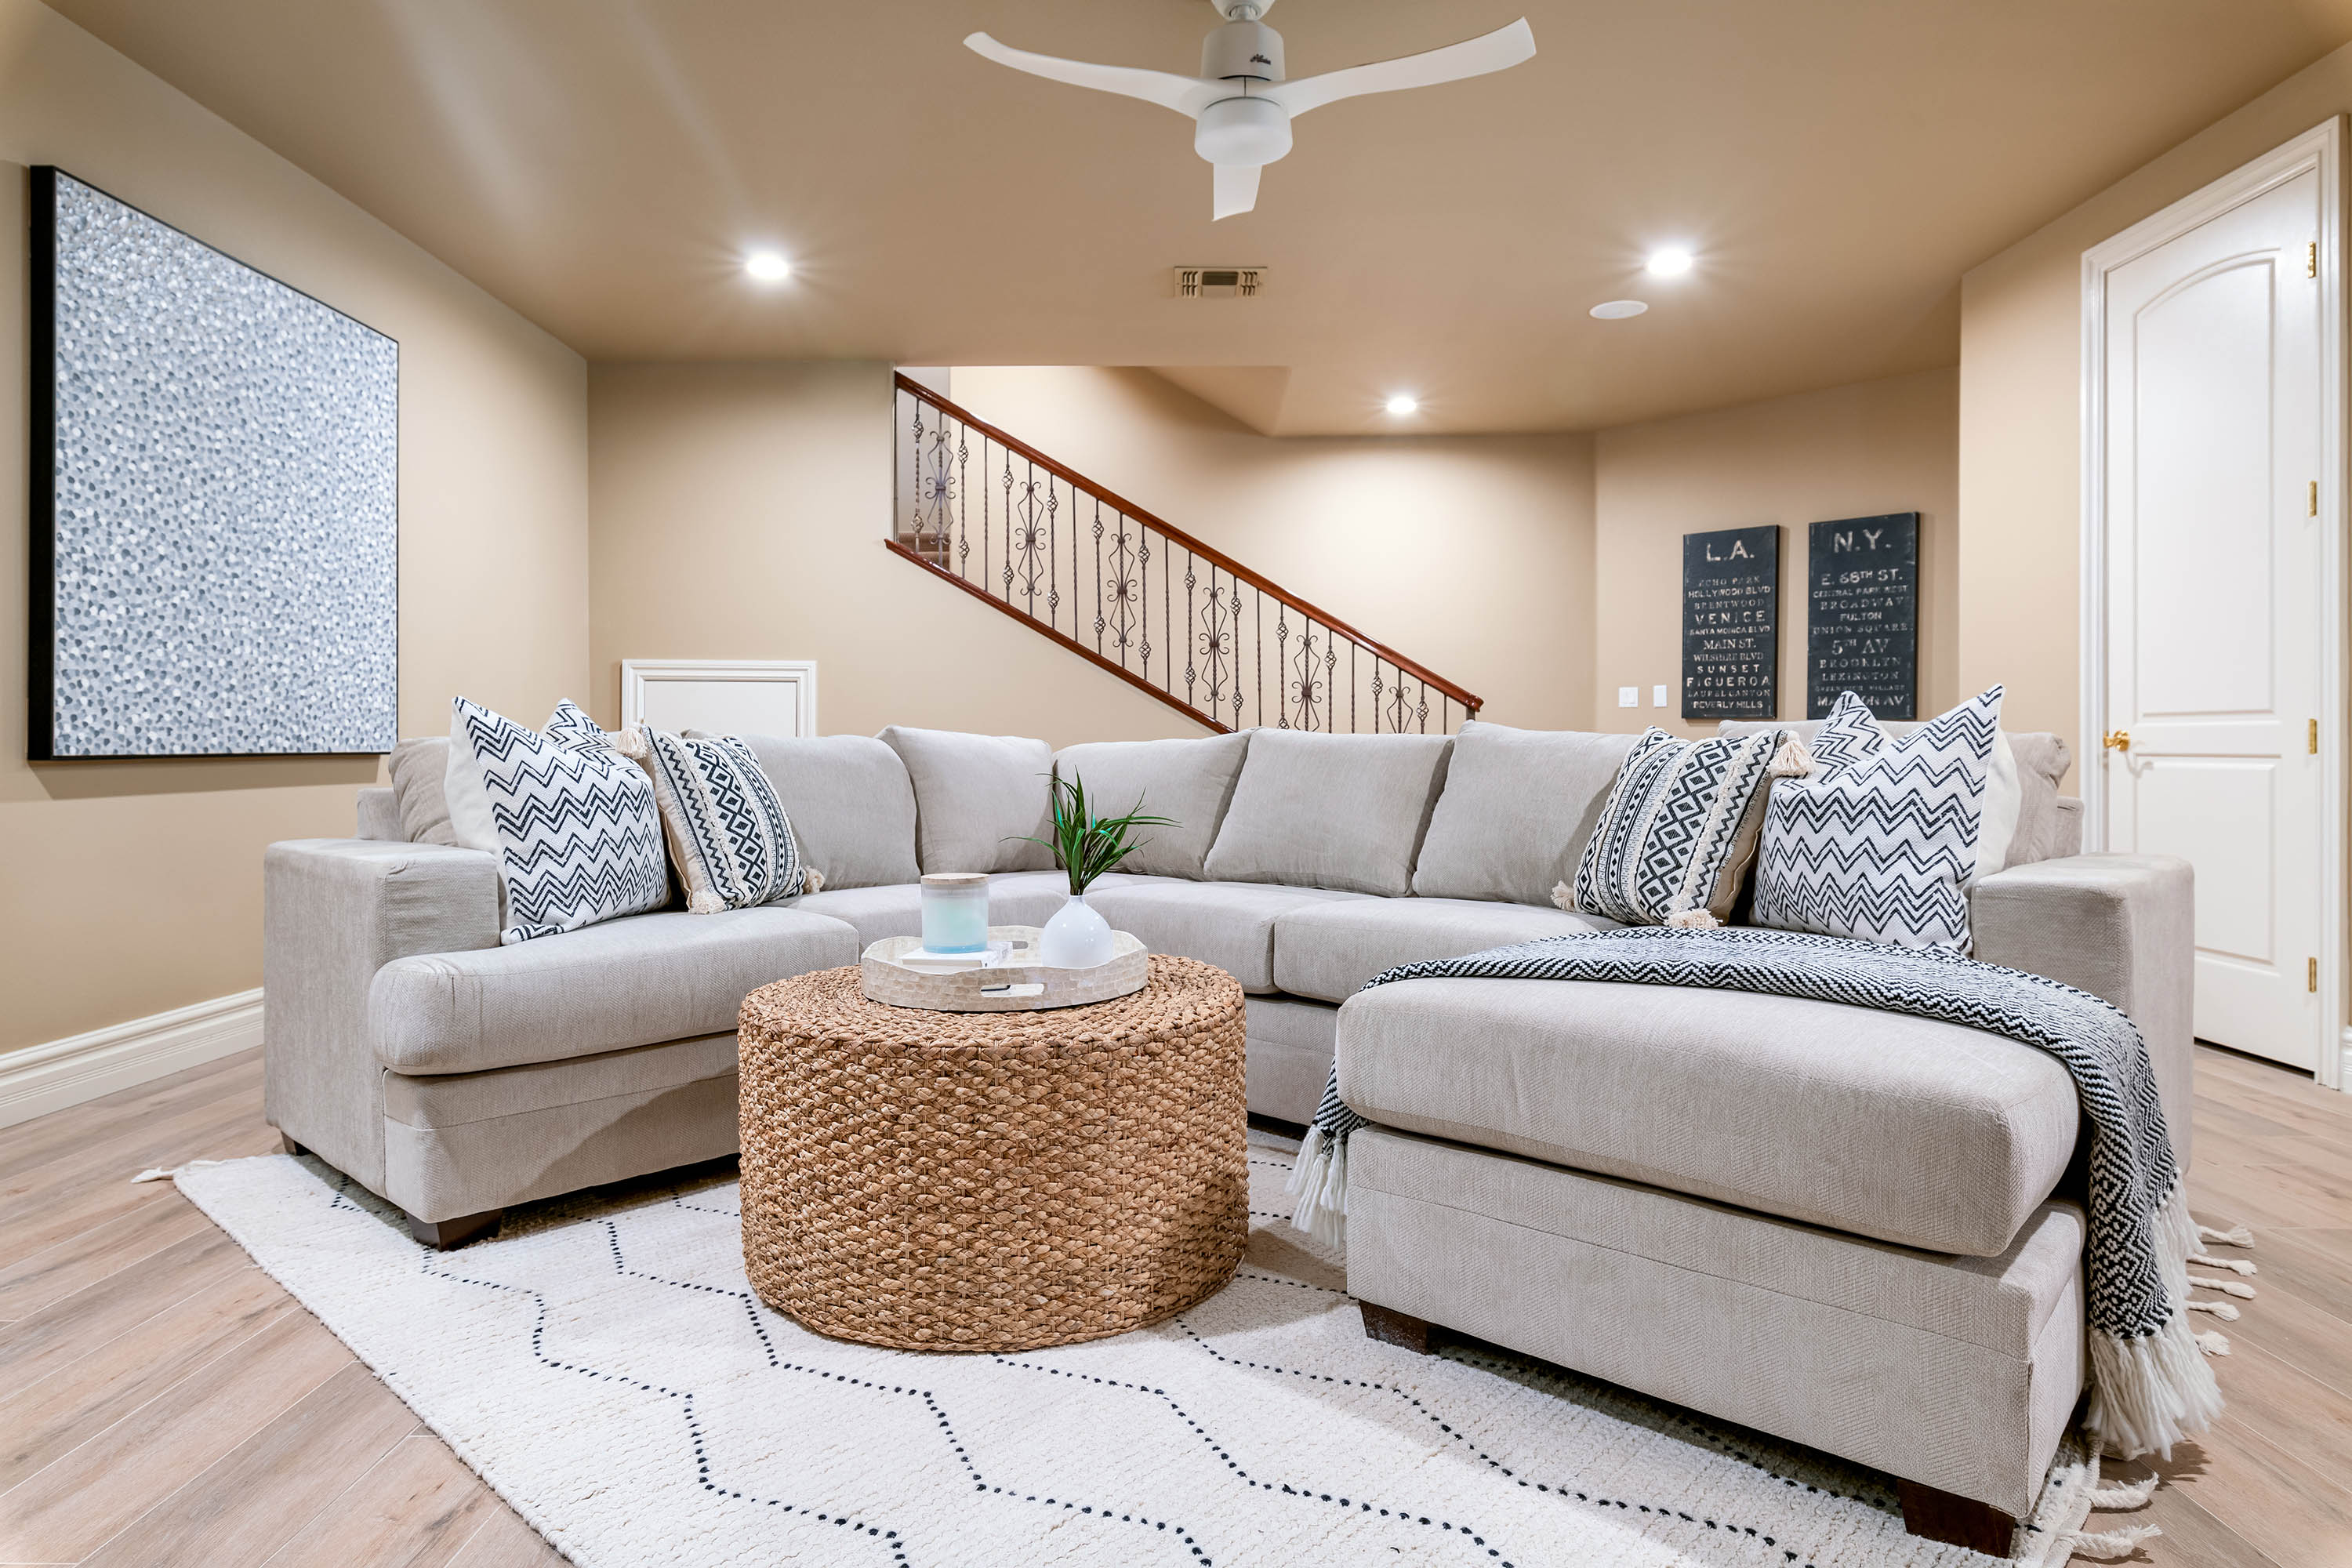 Stately_Home_Staging-2297_FA-024-Basment_Living_Room.jpg